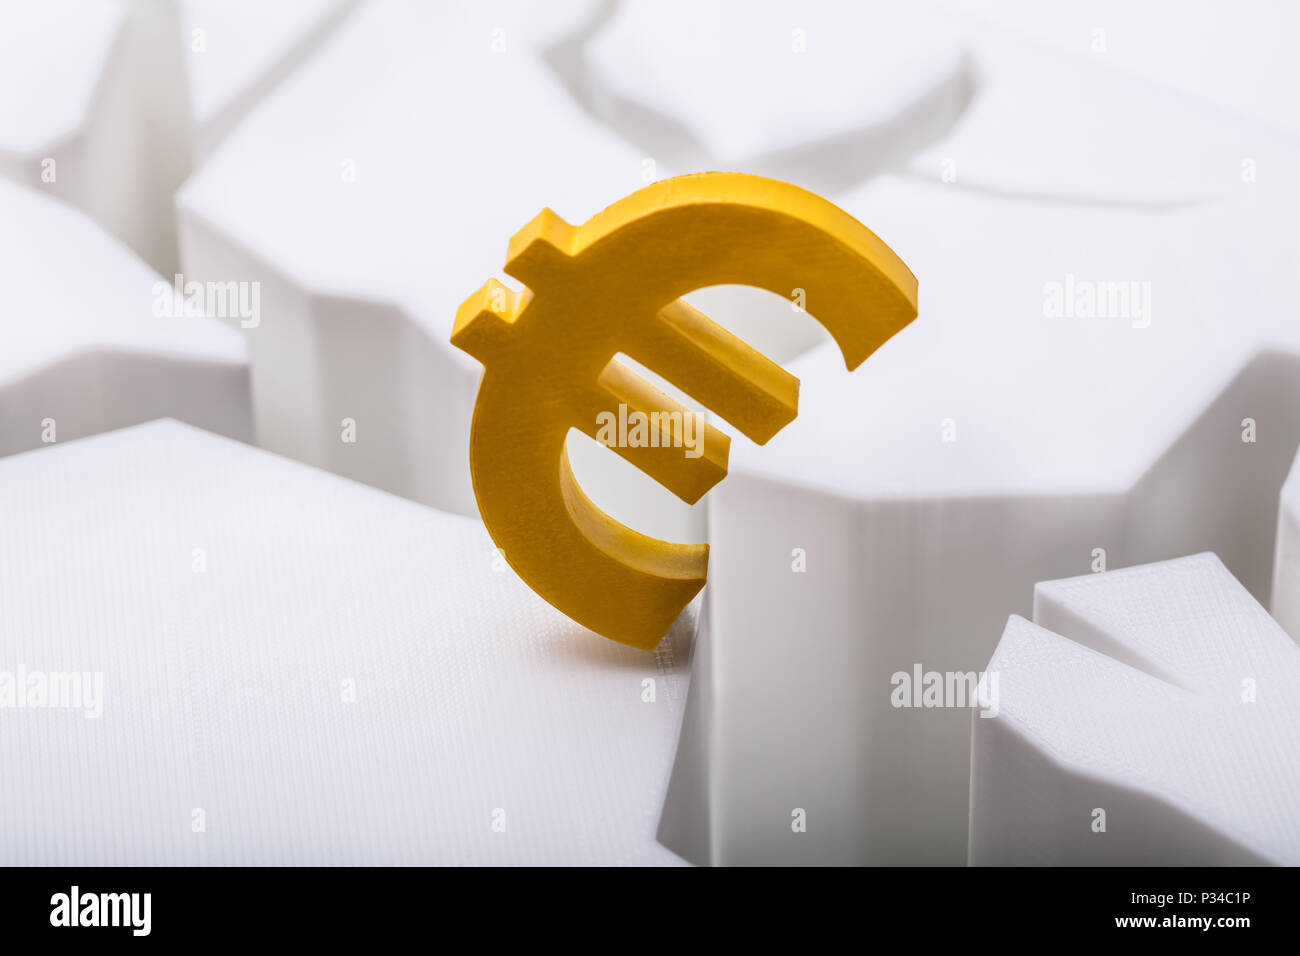 Close Up Of A Golden Euro Currency Symbol On Cracked White Surface